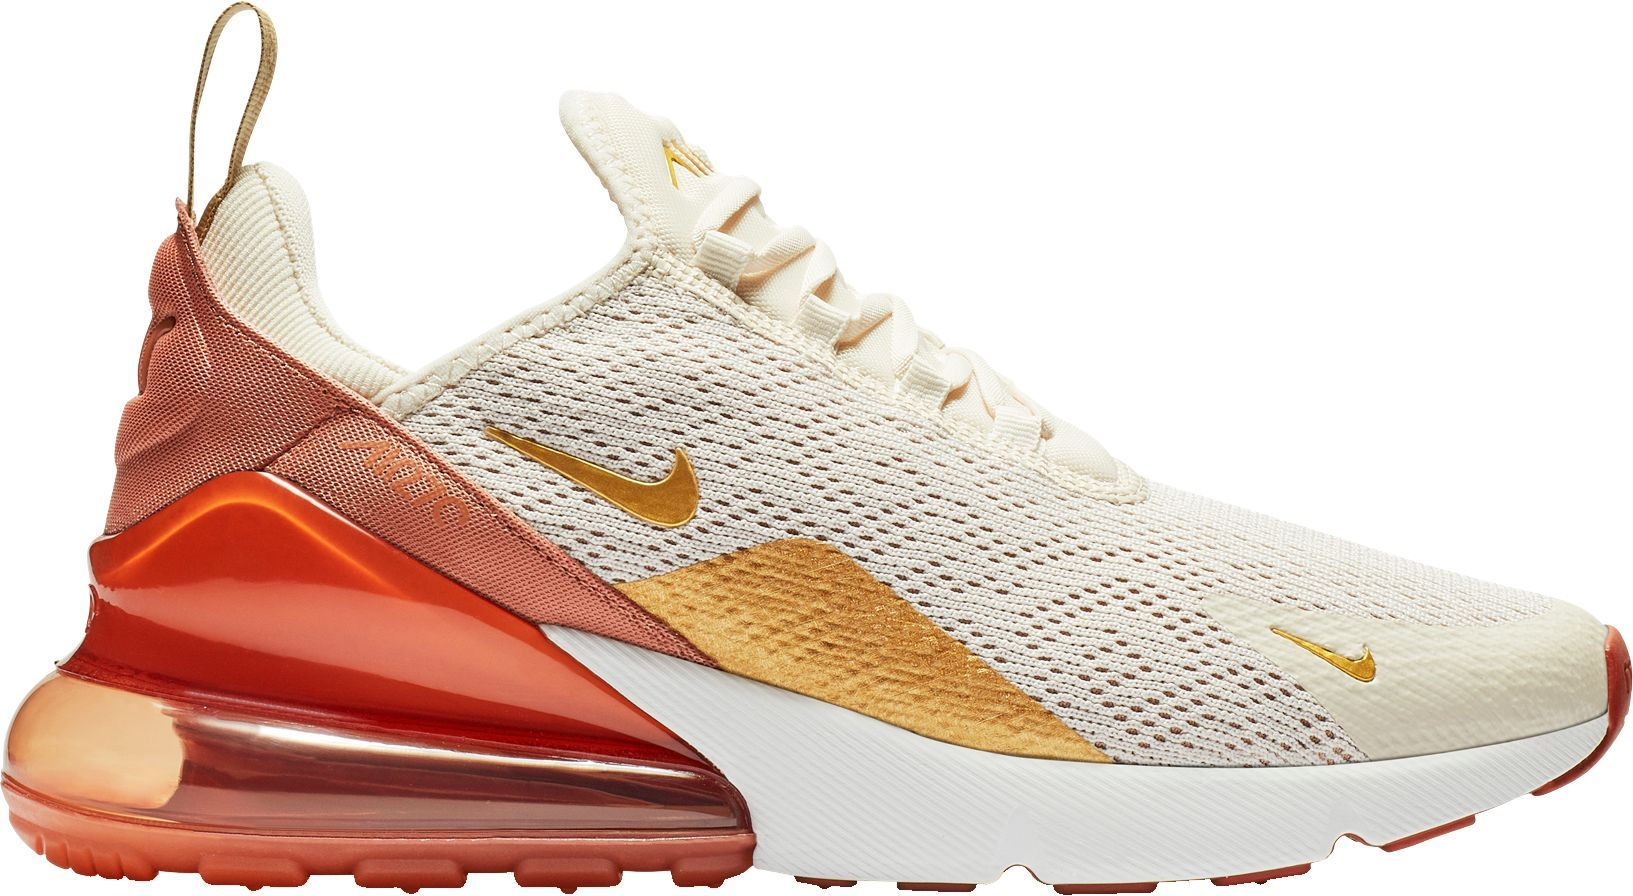 Nike Women's Air Max 270 Shoes, Ivory/Gold | Air max women ...